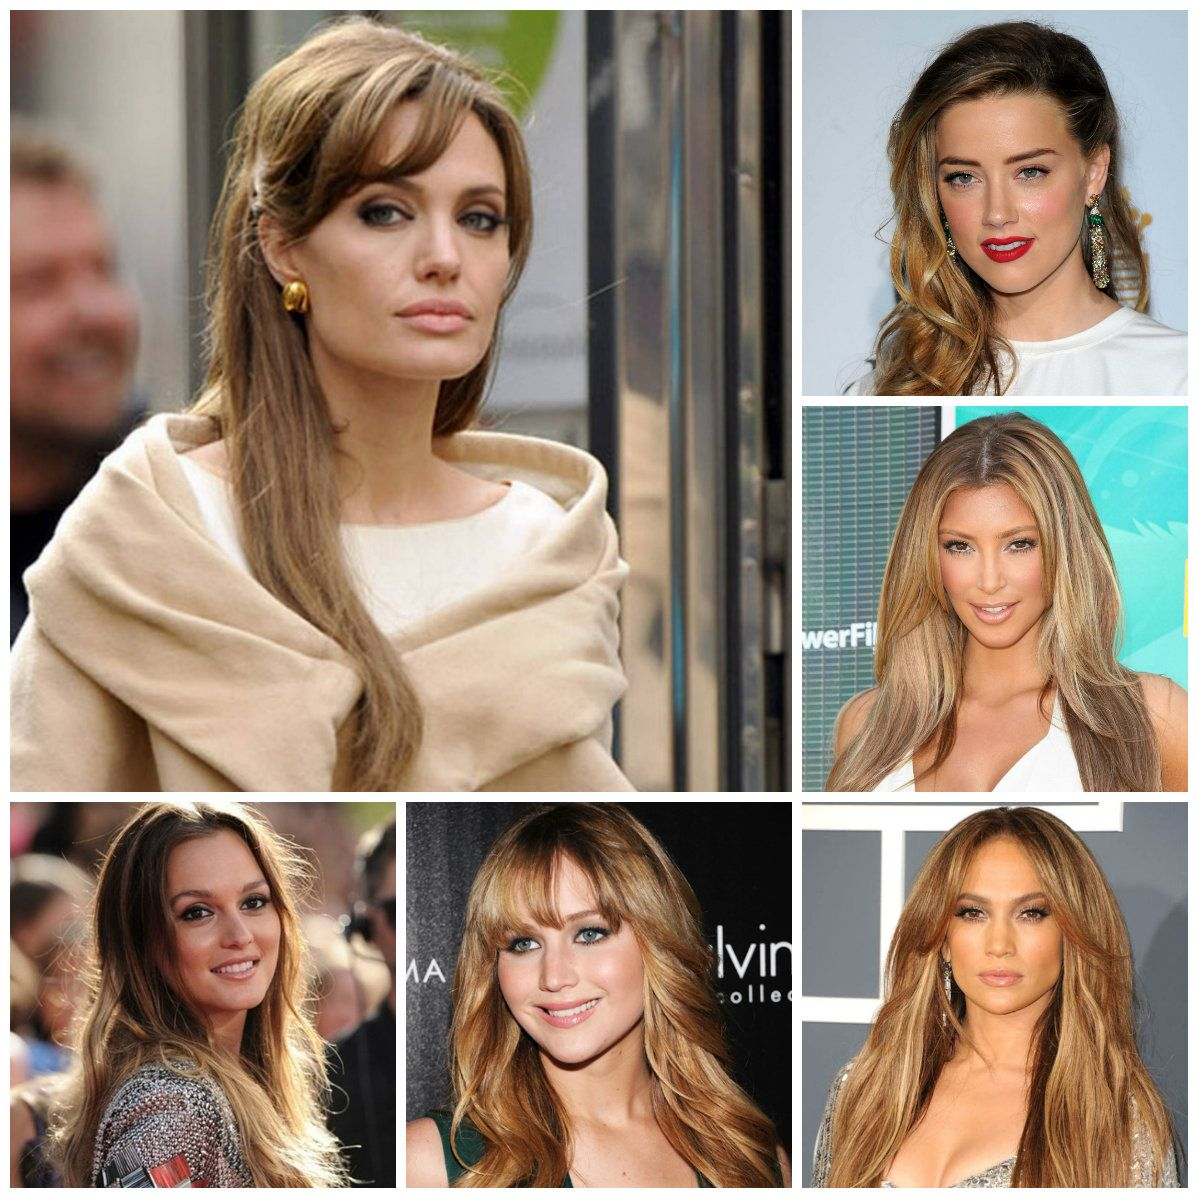 Dirty Blonde Hair Color Is The Closest Shade To Light Brown Women With